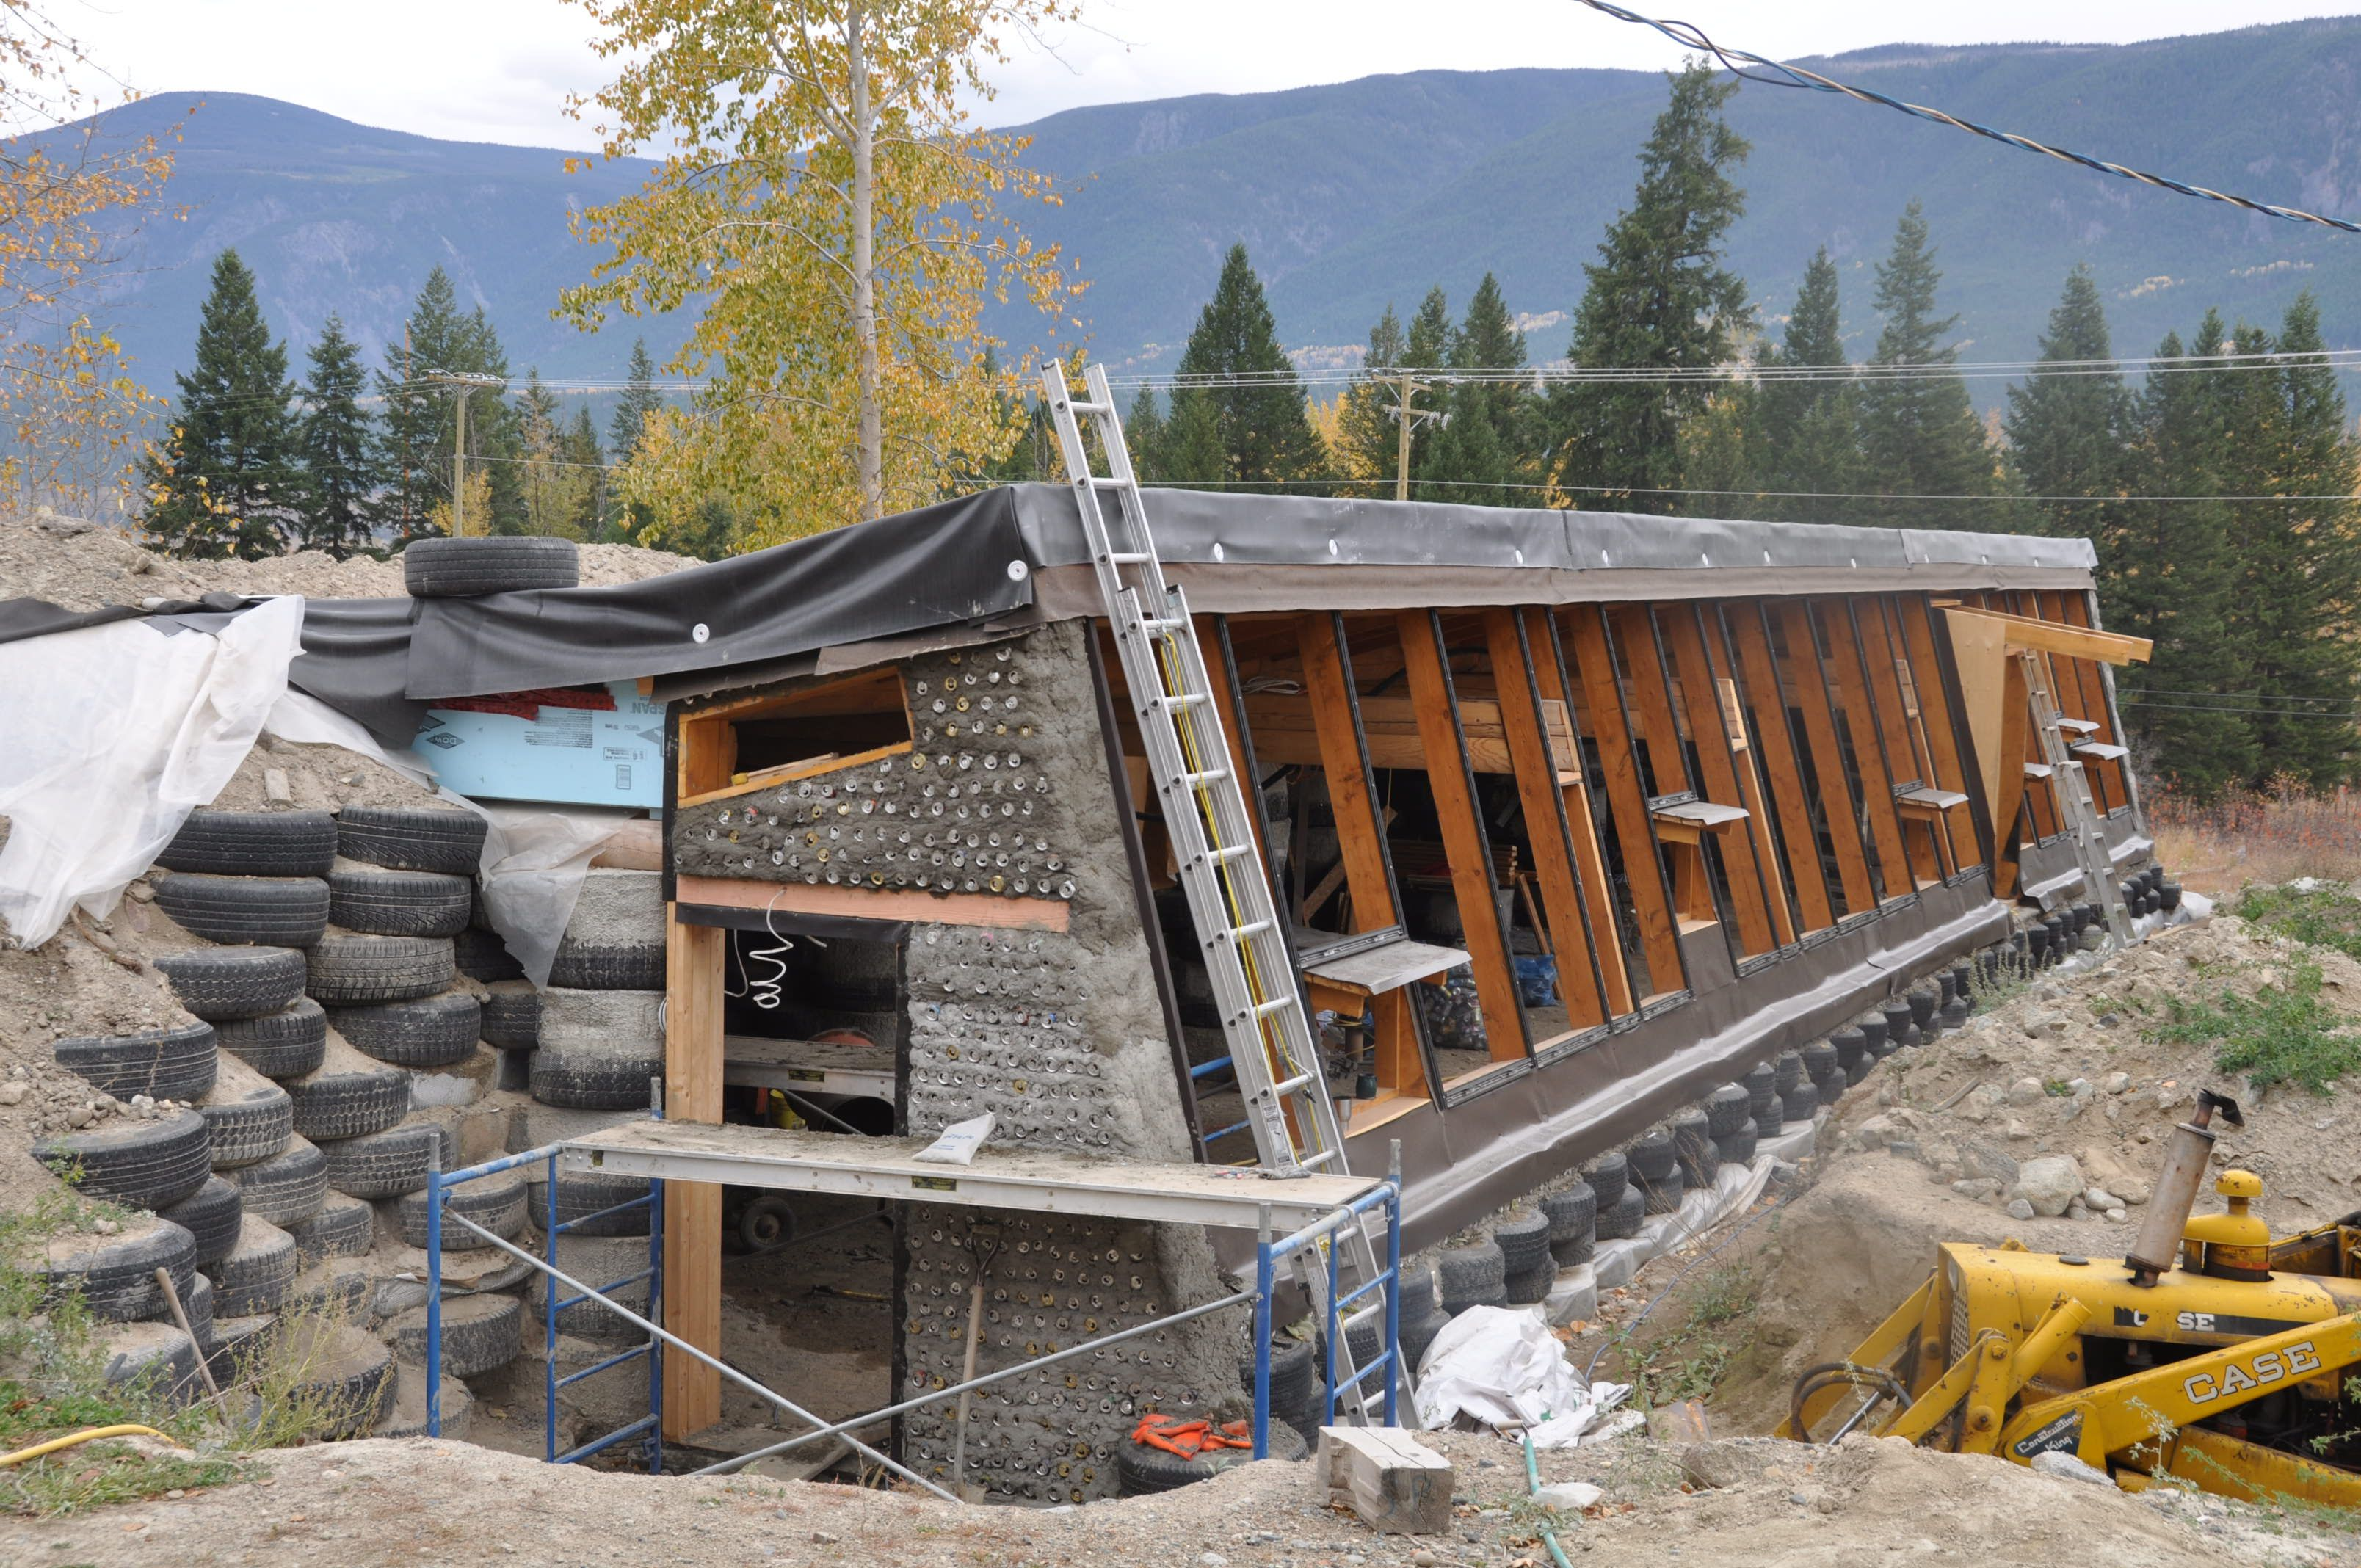 Earthship plans and designs pictures - Earthships On Friday We Finished The Last Of The Pop Can Concrete Work On